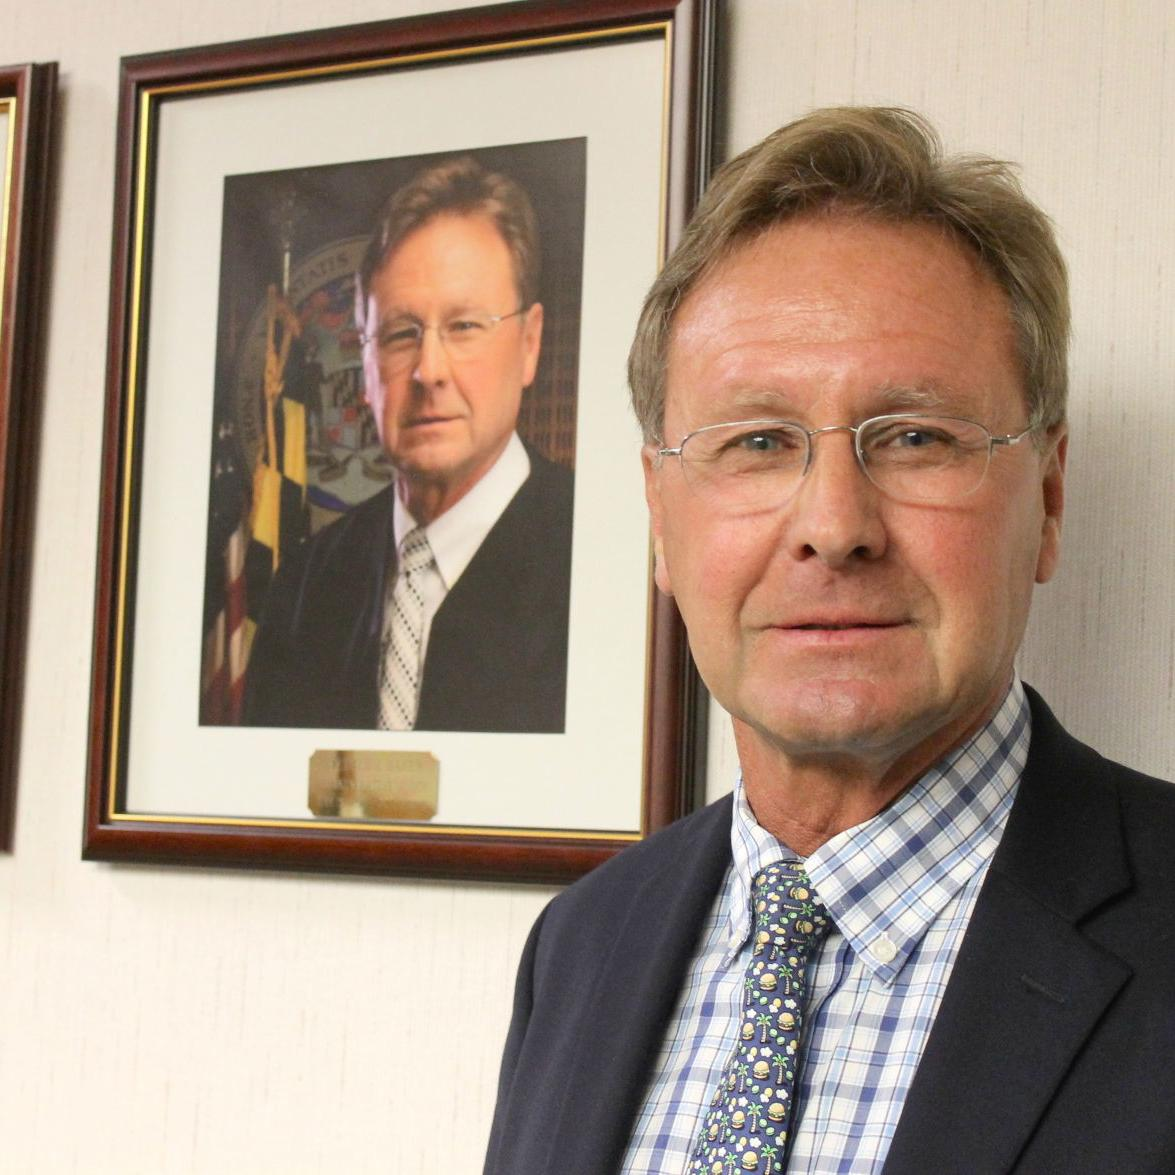 Retired Judge Baker's portrait hung in district court